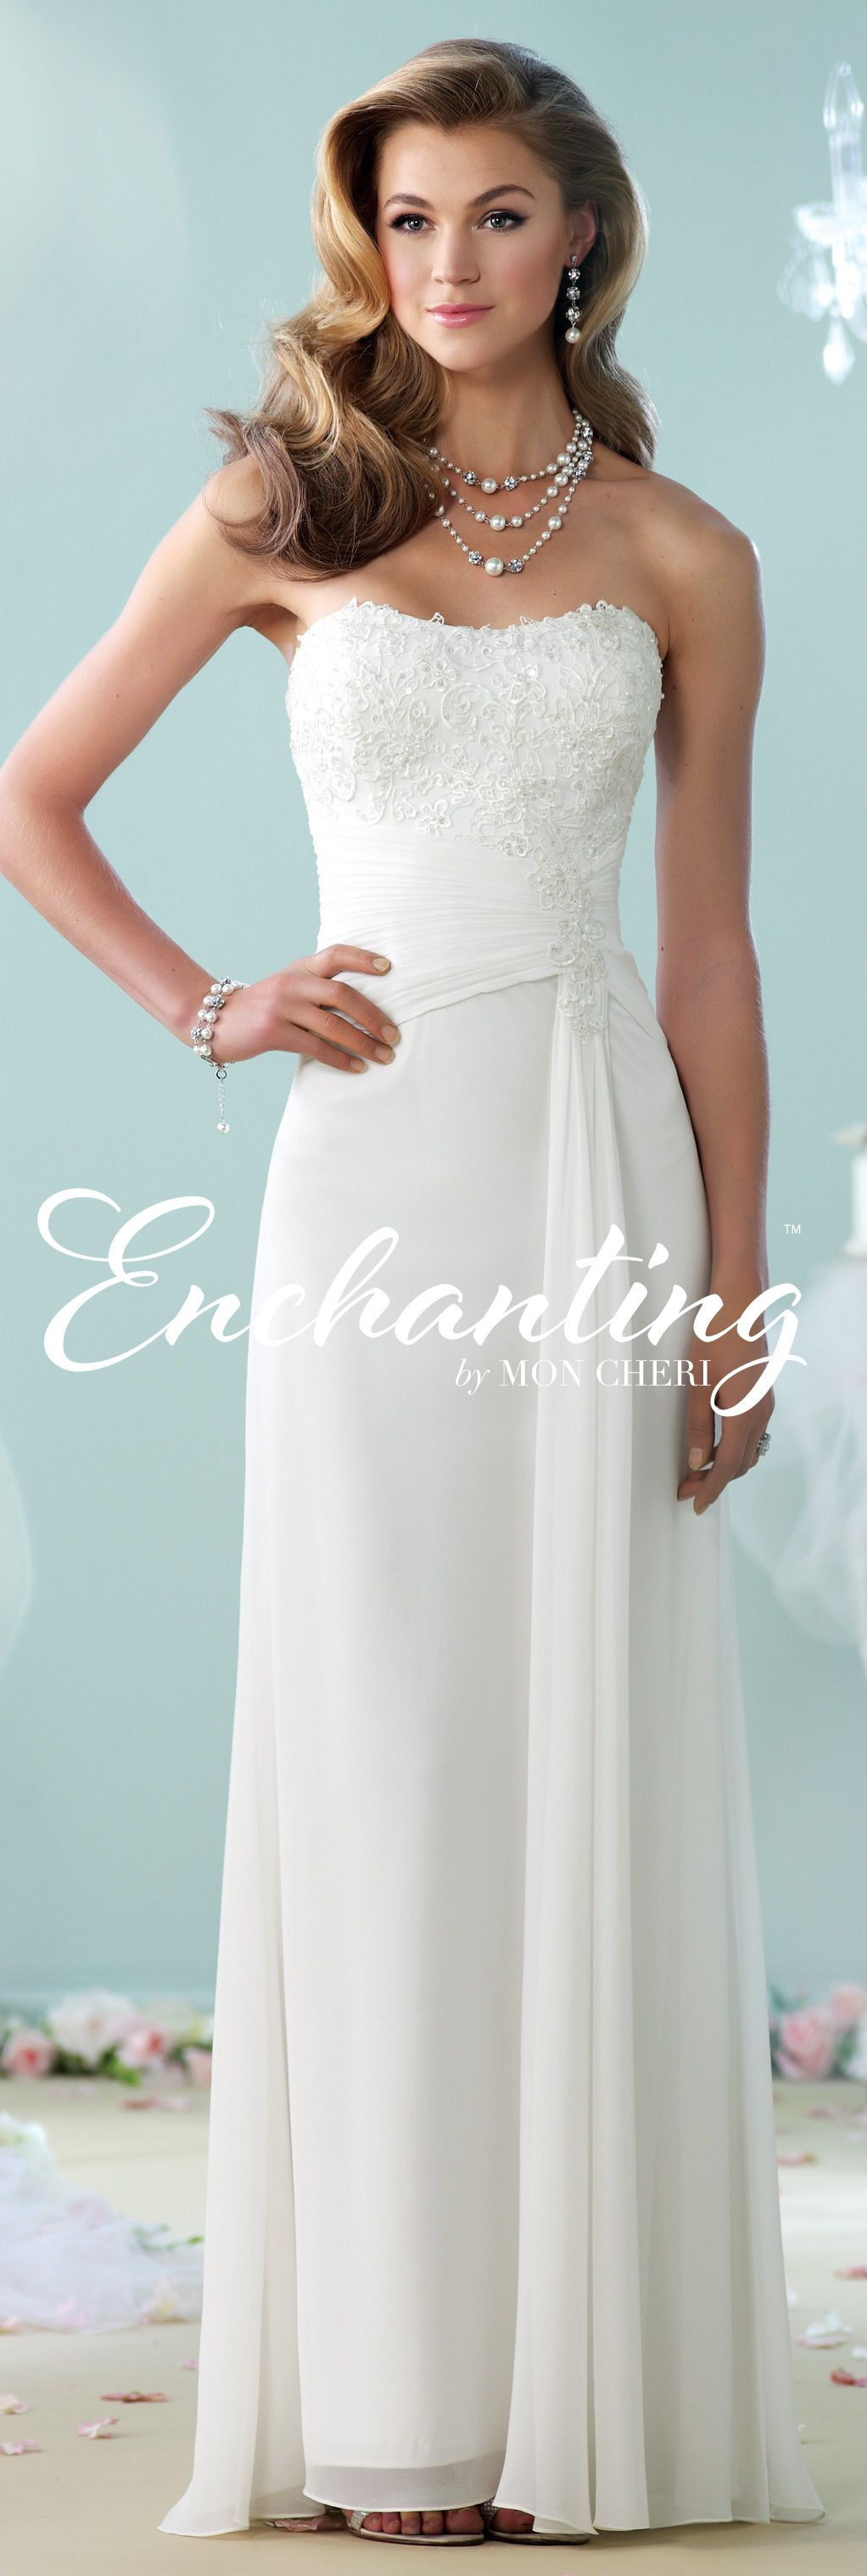 Wedding renewal dresses for beach  Modern Wedding Dresses  by Mon Cheri  Enchanted Collection and